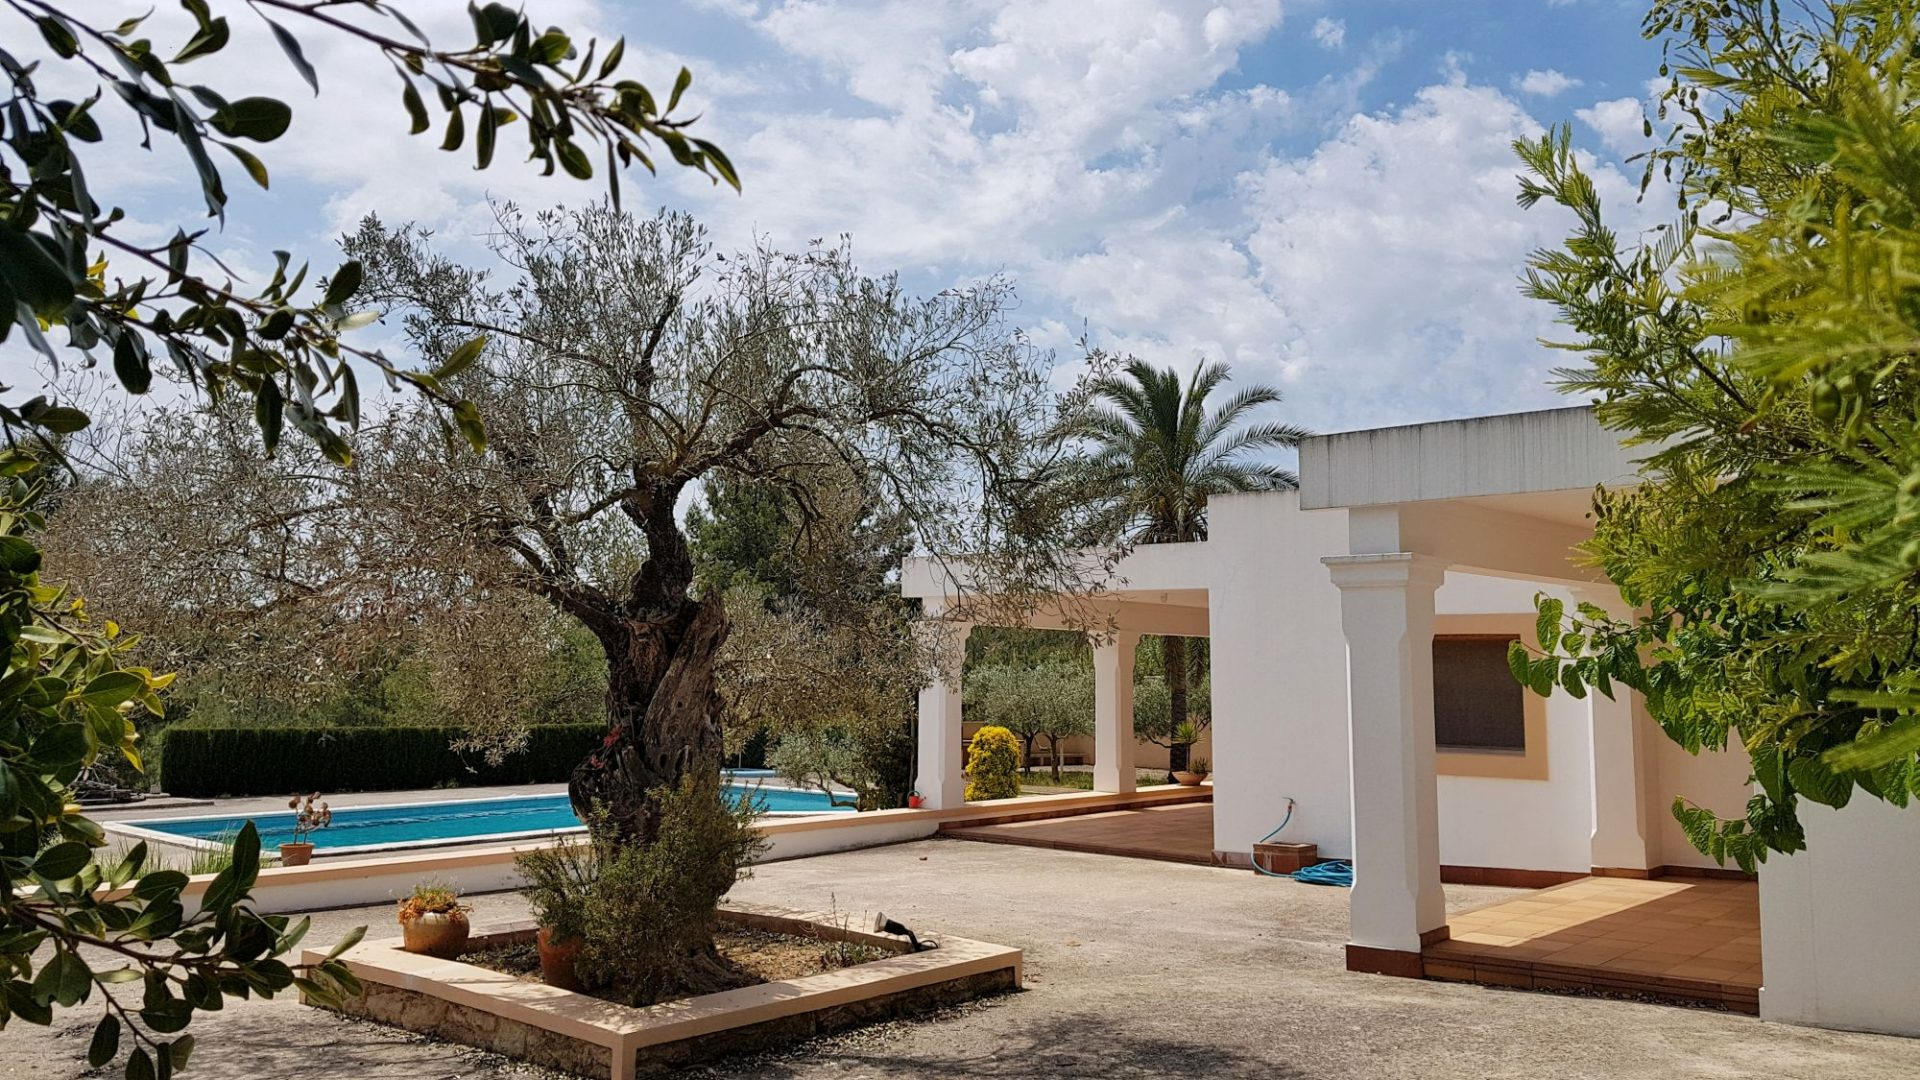 Ancient finca located in the heart of the village of St Gertrudis.